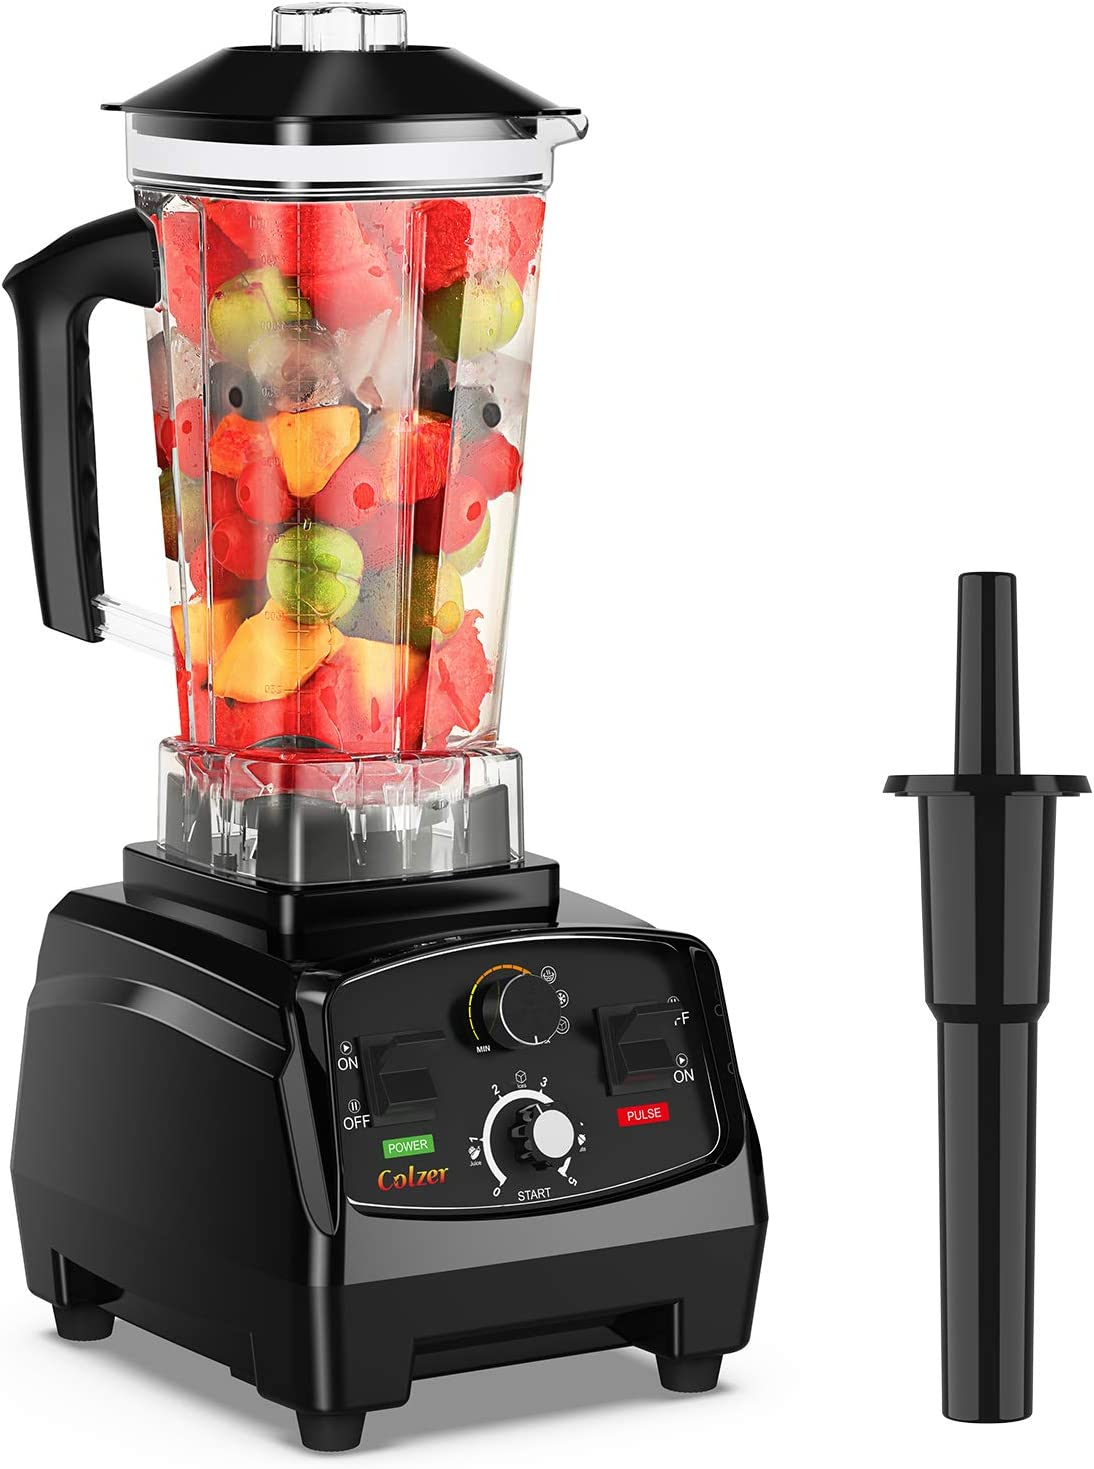 COLZER Professional Countertop Blender with 2200-Watt Base, Smoothie blender,Built-in Timer,High Power Blender 2L Cups for Frozen Drinks,Shakes and Smoothies